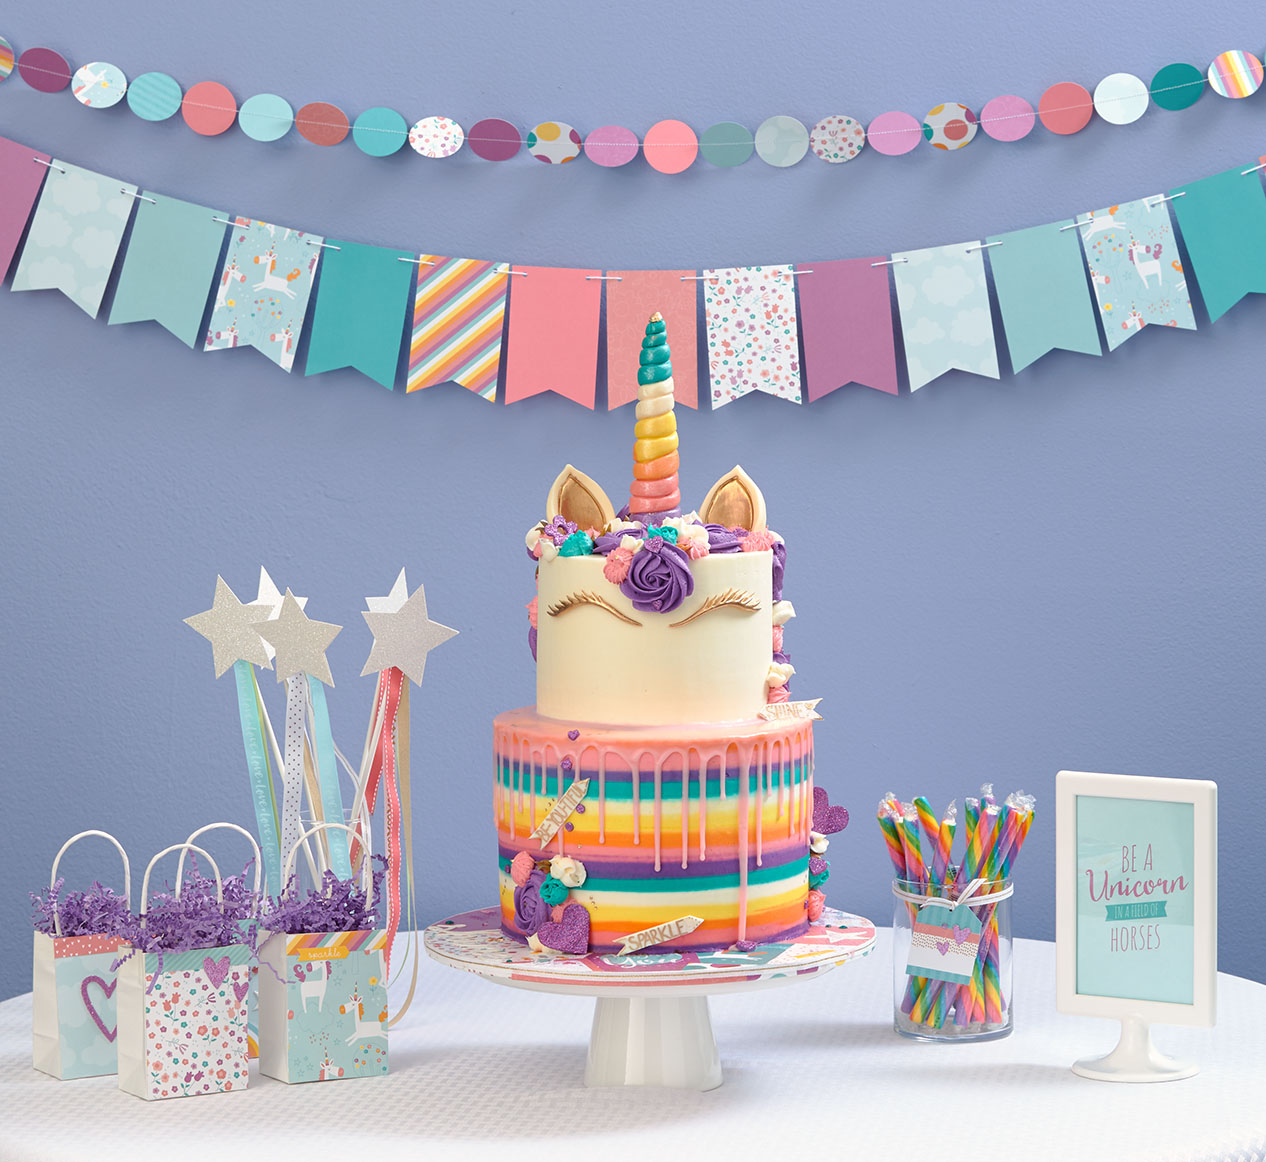 This Unicorn Party Takes The Cake Make It From Your Heart